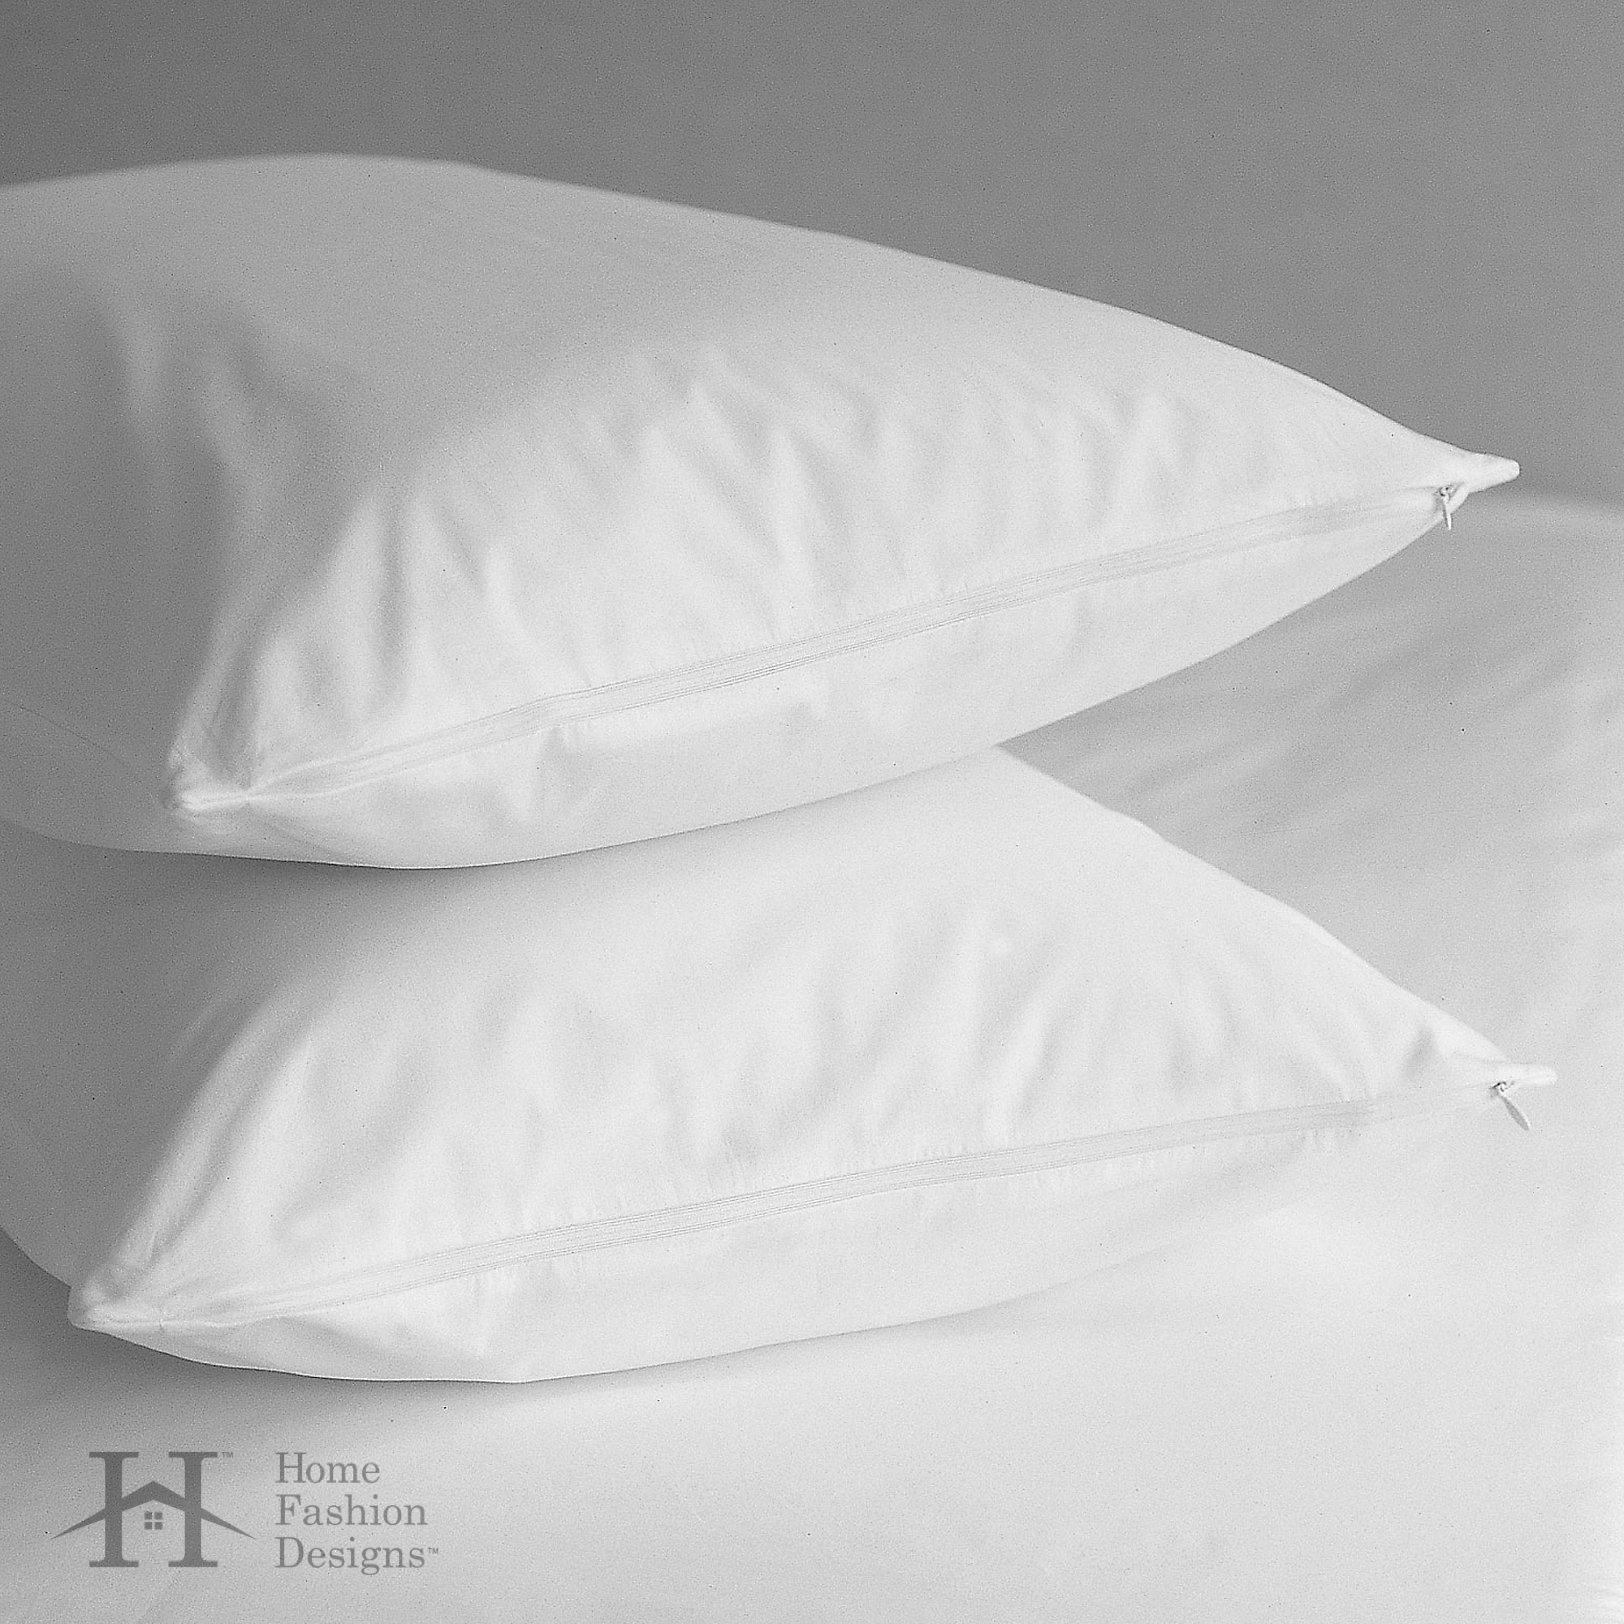 Home Fashion Designs 4-Pack Premium Allergy Protection Pillow Protectors. Hypoallergenic Dust Mite & Bed Bug Resistant Anti-Microbial 400 Thread Count 100% Cotton Zippered Pillow Covers. (Standard) by Home Fashion Designs (Image #7)